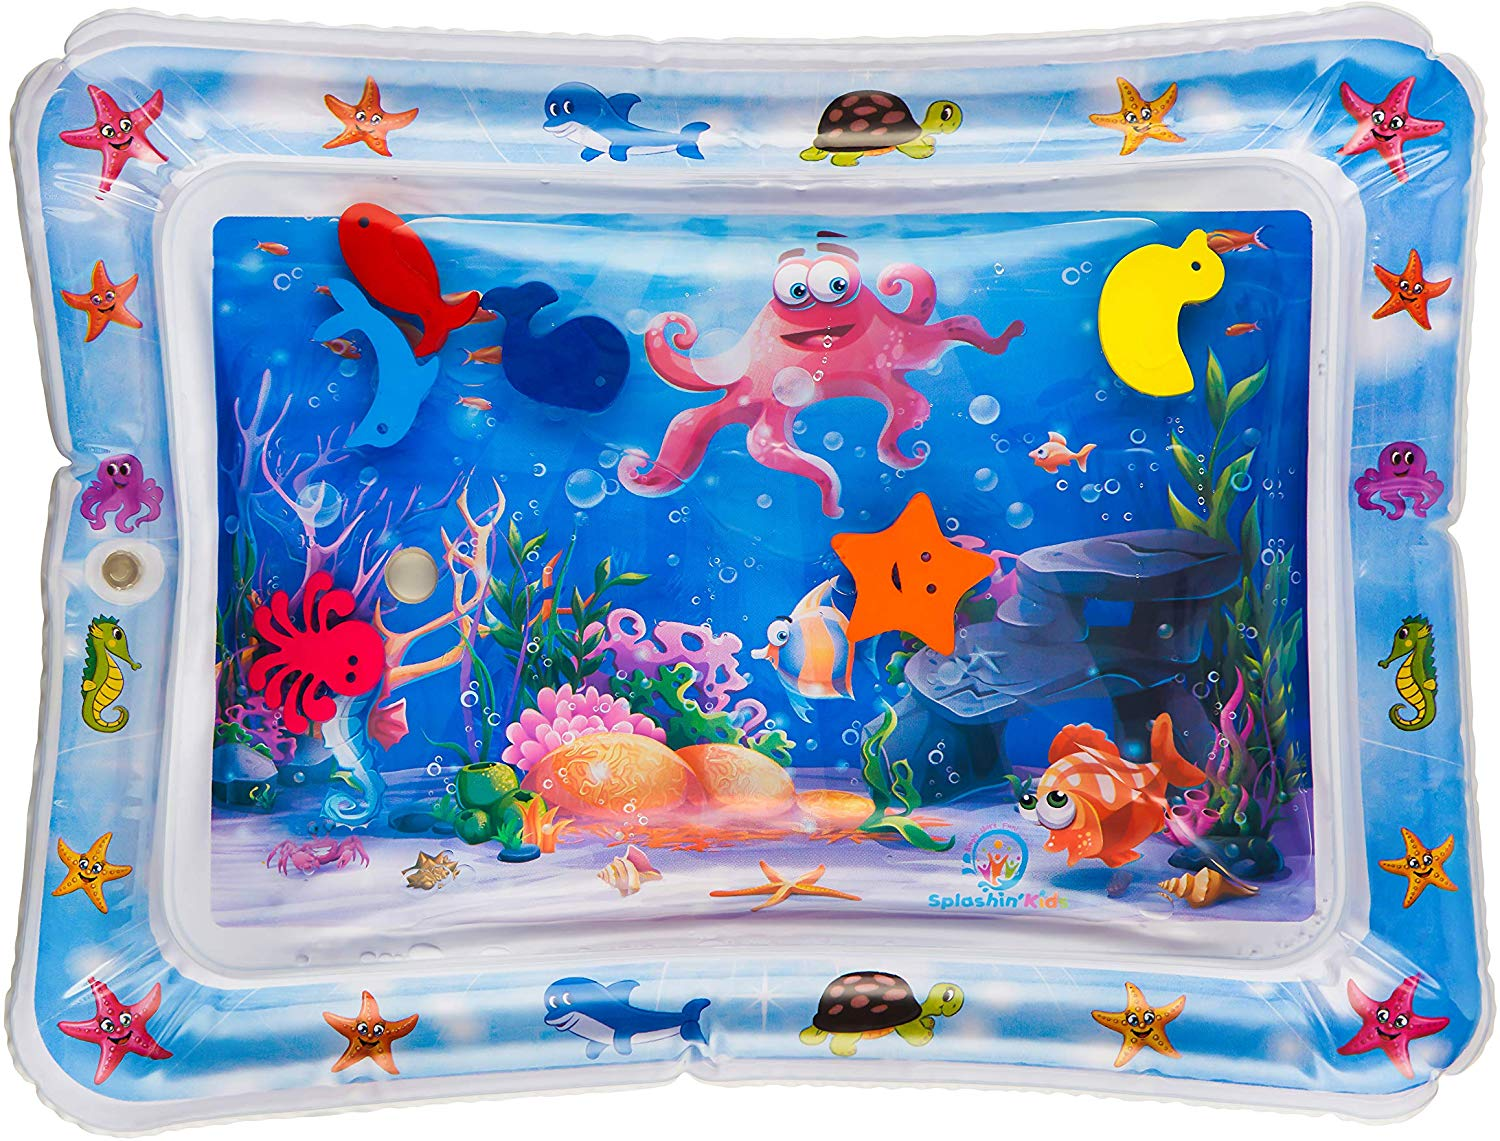 Splashin'kids Inflatable Tummy Time Water Mat